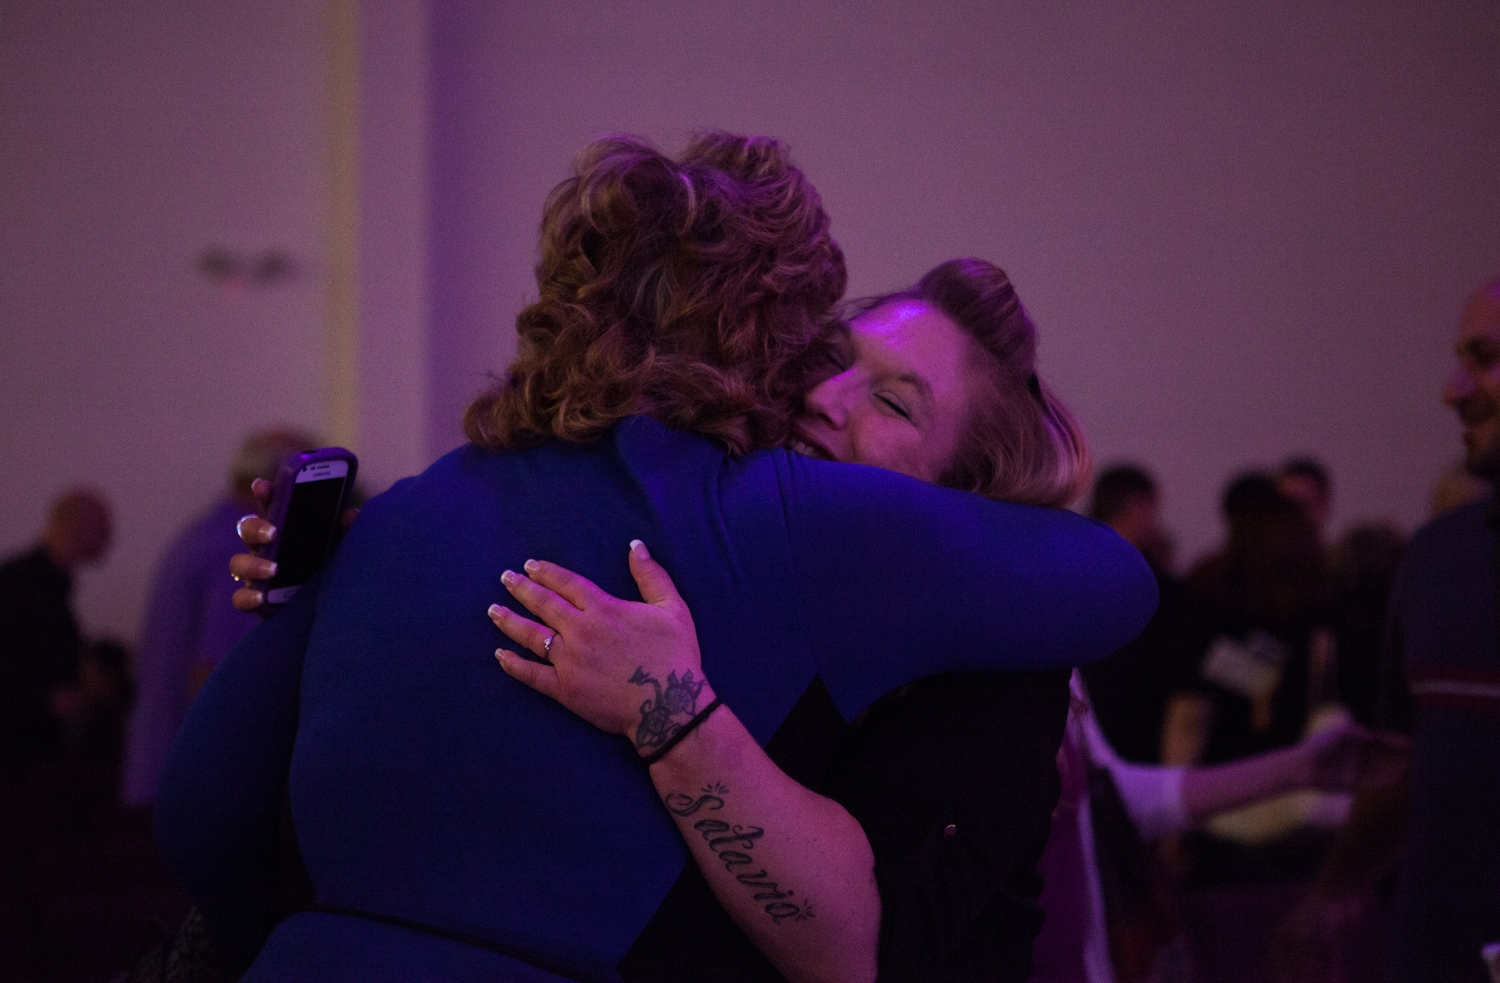 Jennifer Kempton, 32, hugs a fellow parishioner at church on Sunday morning after Jennifer gave a speech about leaving prostitution and finding God. Jennifer says church and community really help her heal. She's working hard to reunite with her children.